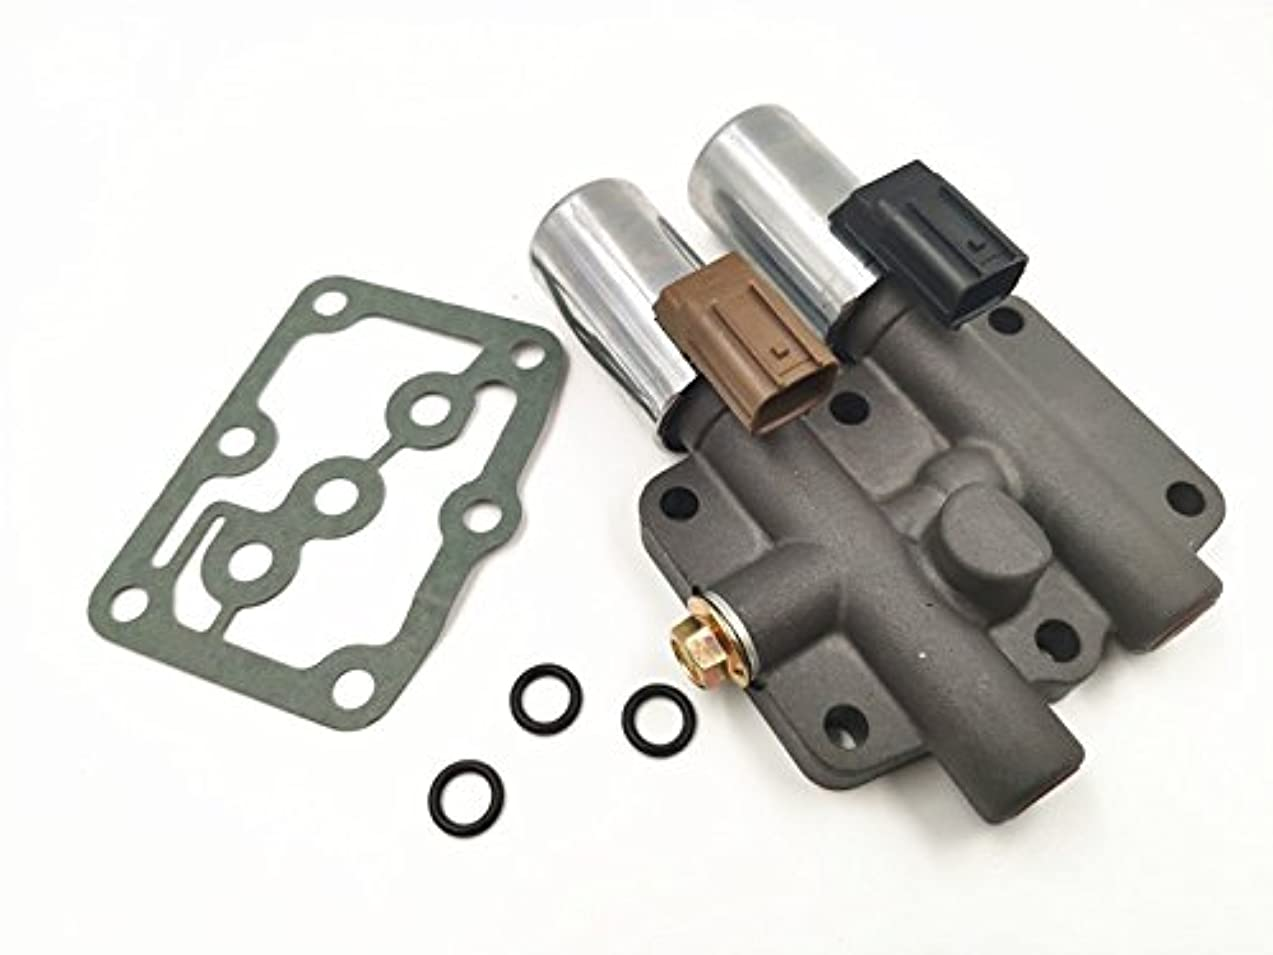 Anngo Replace 28250-P6H-024 Dual Linear Transmission Solenoid Fit Honda Accord Odyssey Prelude Pilot Acura MDX CL TL